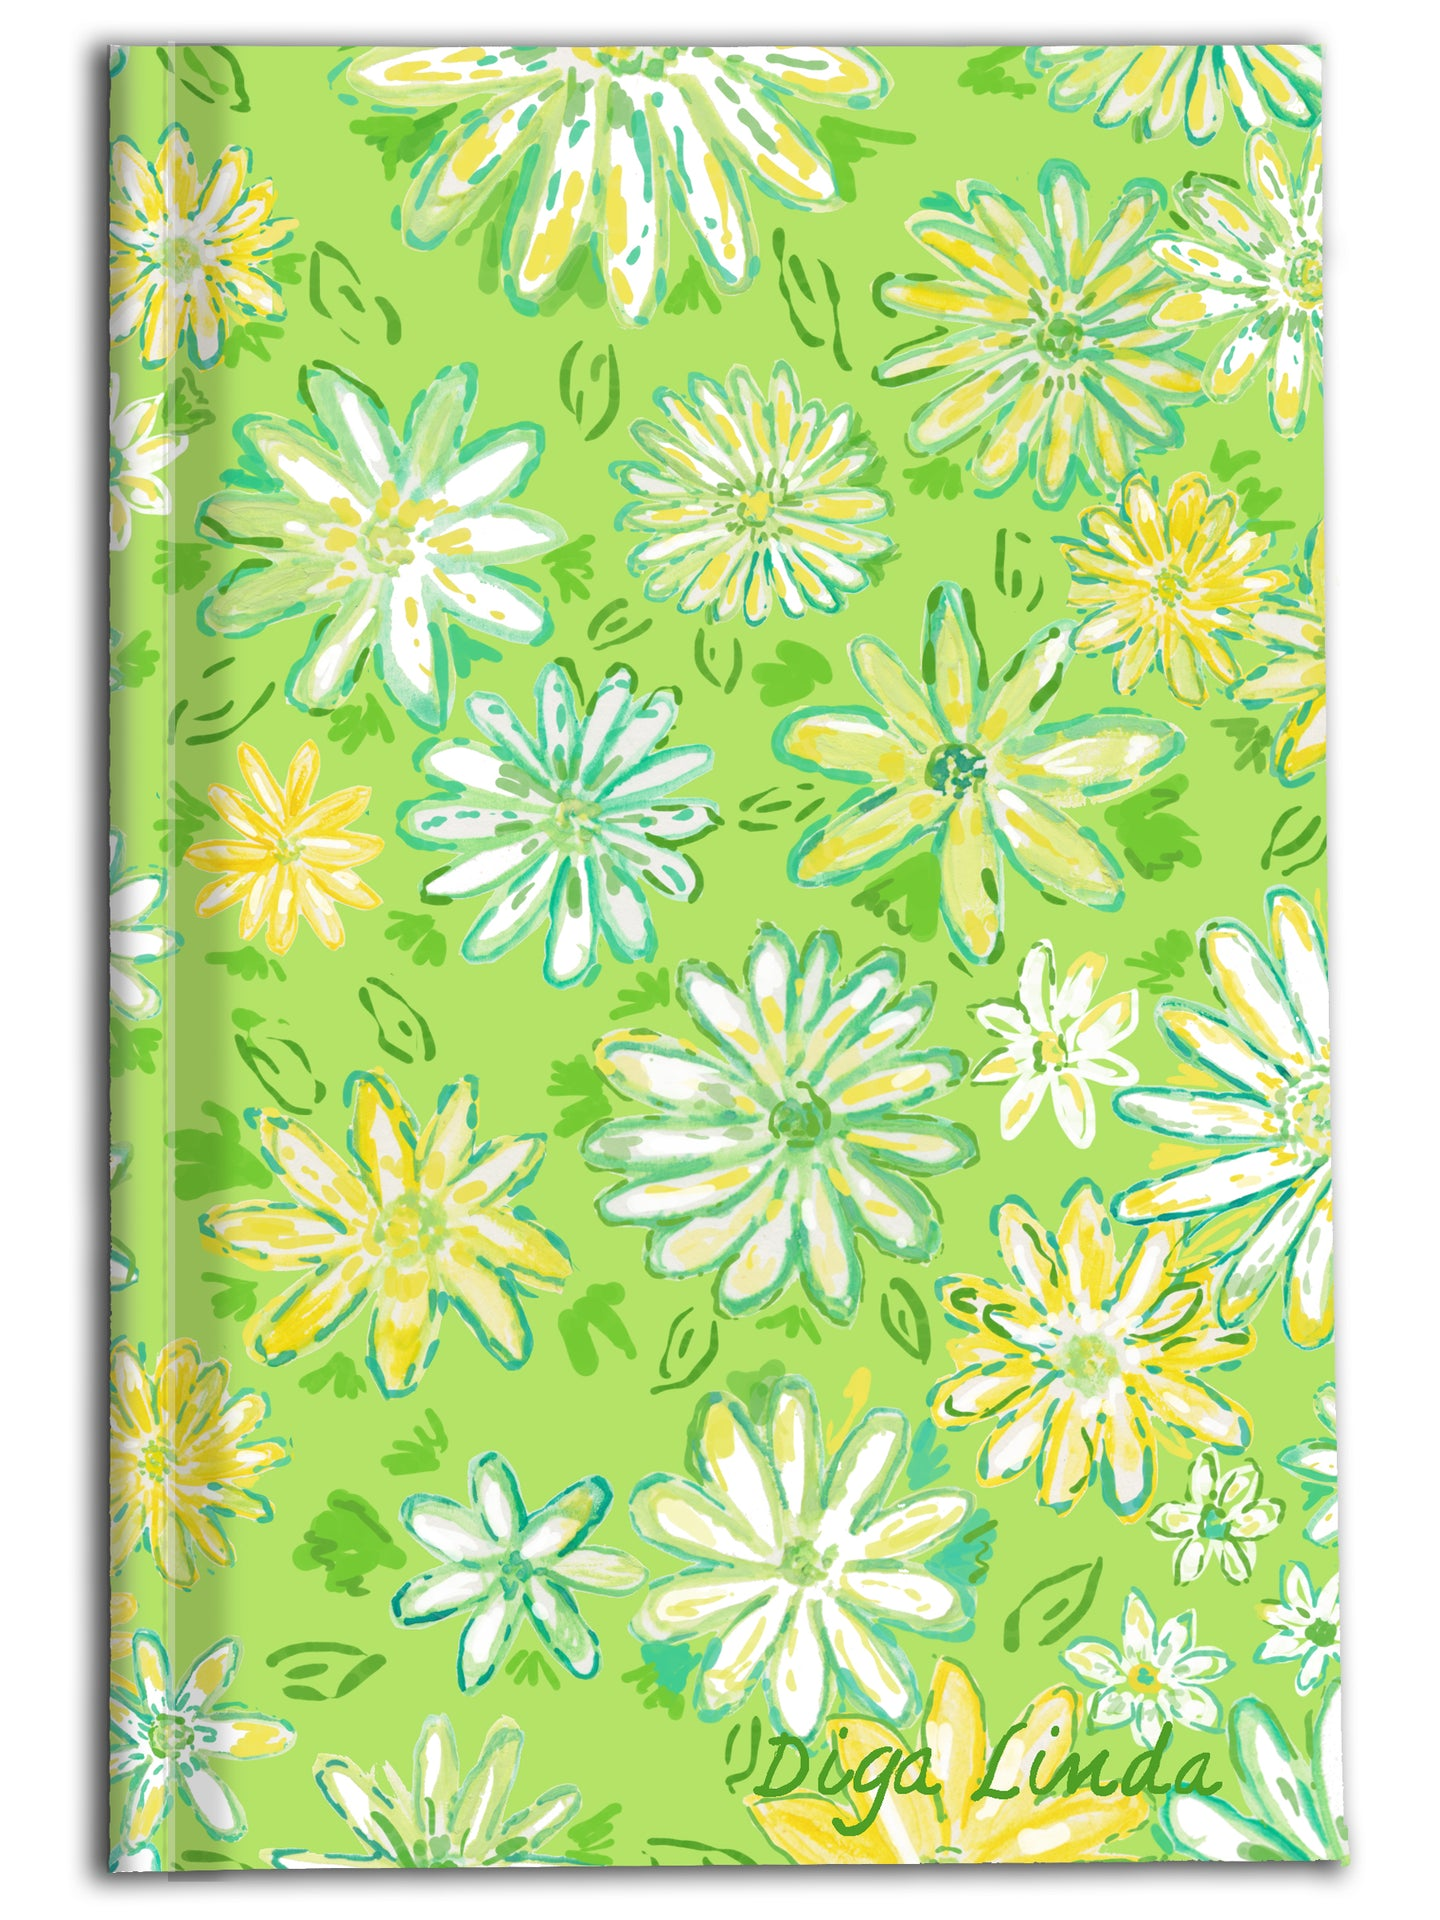 Wild Daisies Journal - Diga Linda